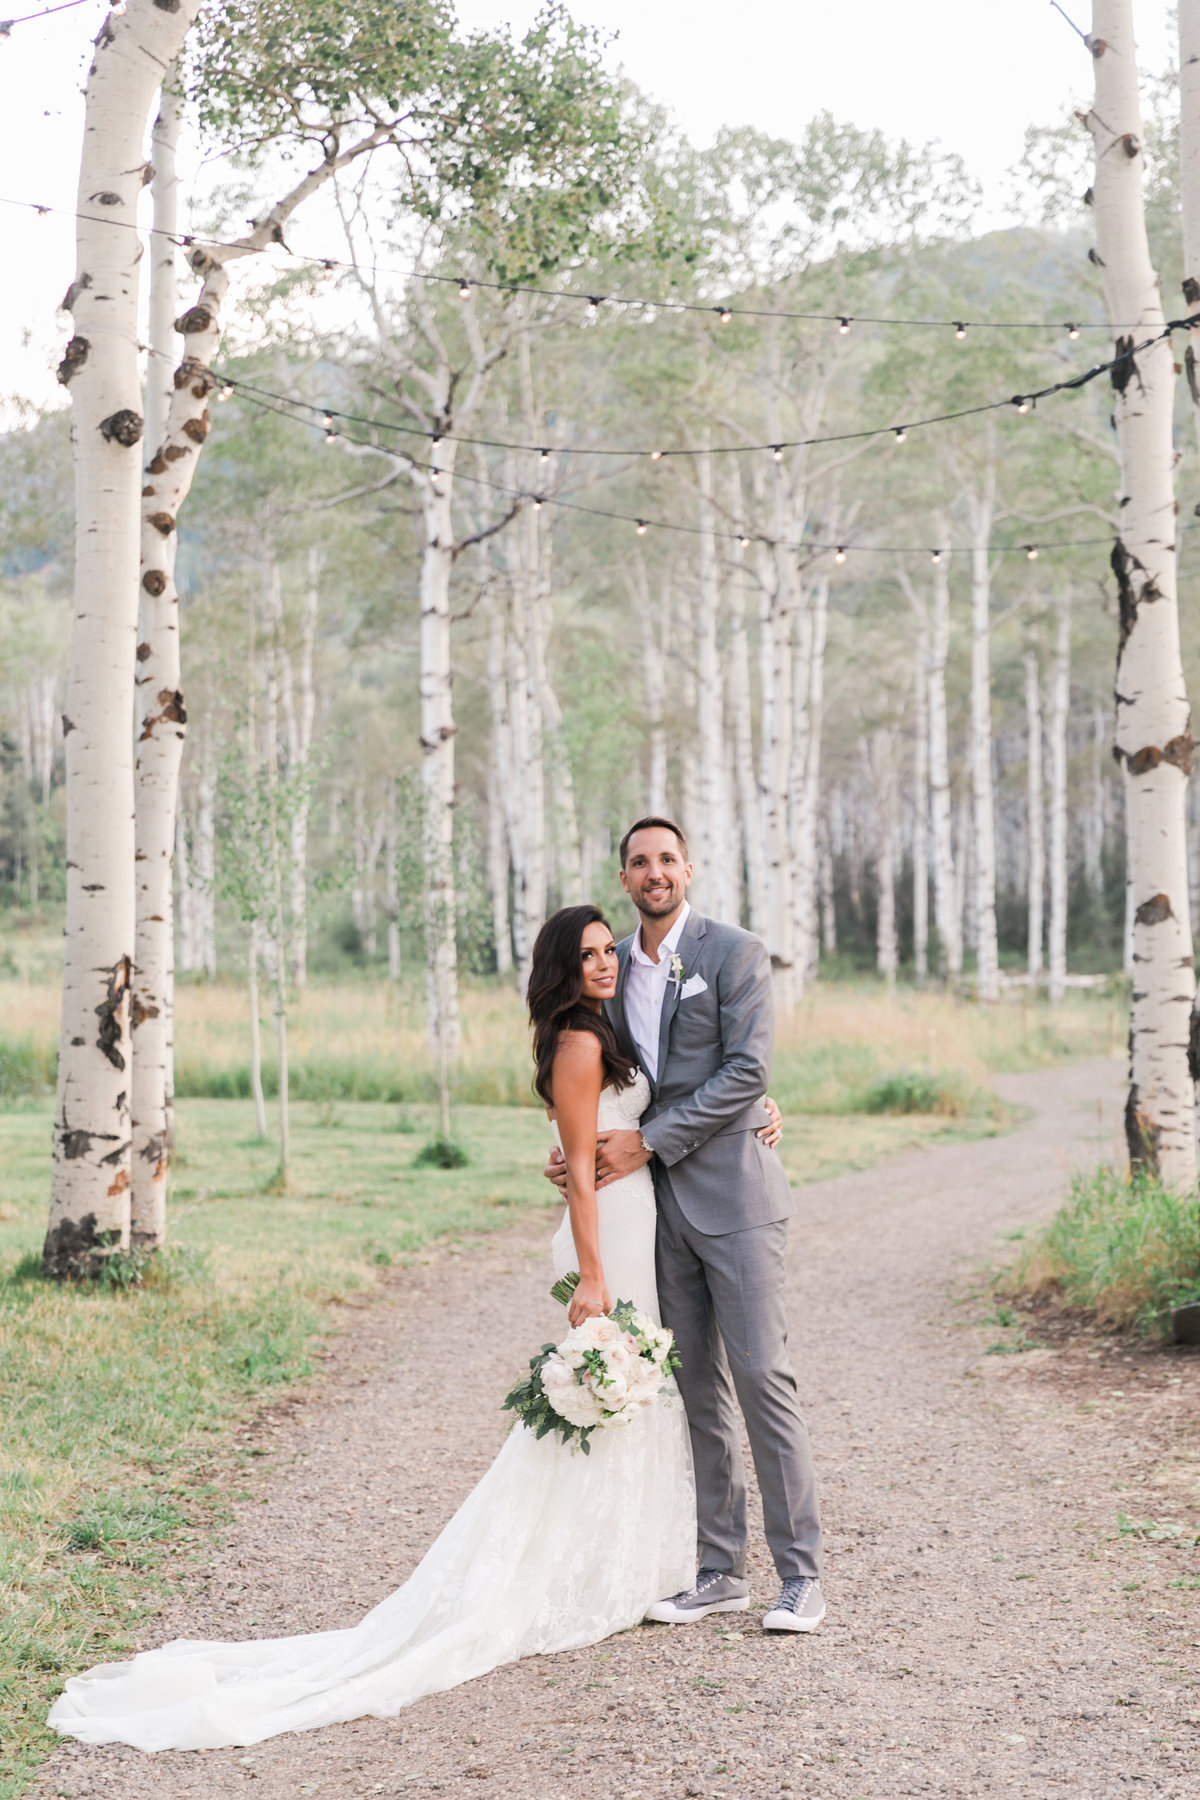 Kari_Ryan_Anderson_Colorado_Outdoor_Chapel_Wedding_Valorie_Darling_Photography - 112 of 126